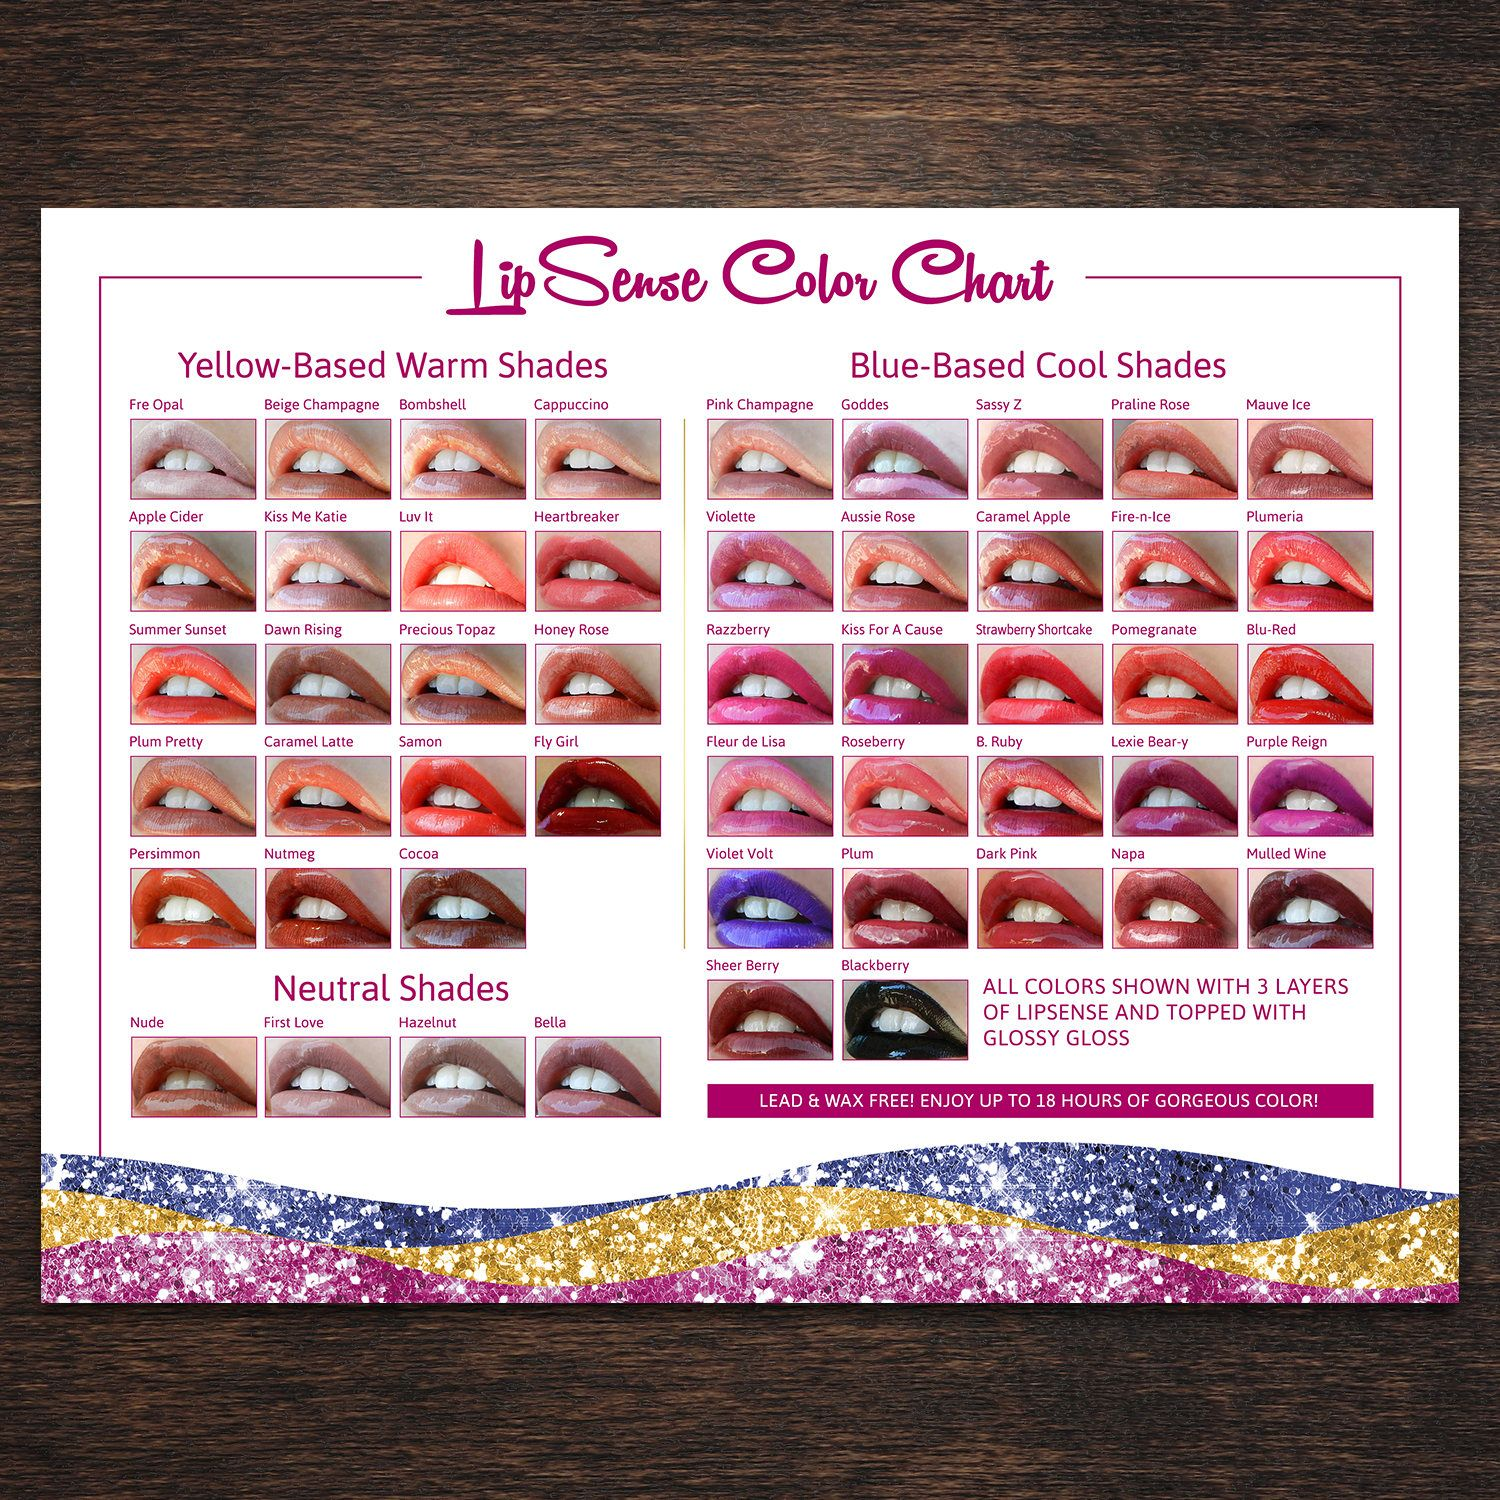 Lipsense color chart 50 colors lipsense senegence 2017 fall lipsense color chart 50 colors lipsense senegence 2017 fall colors lipsense digital geenschuldenfo Gallery